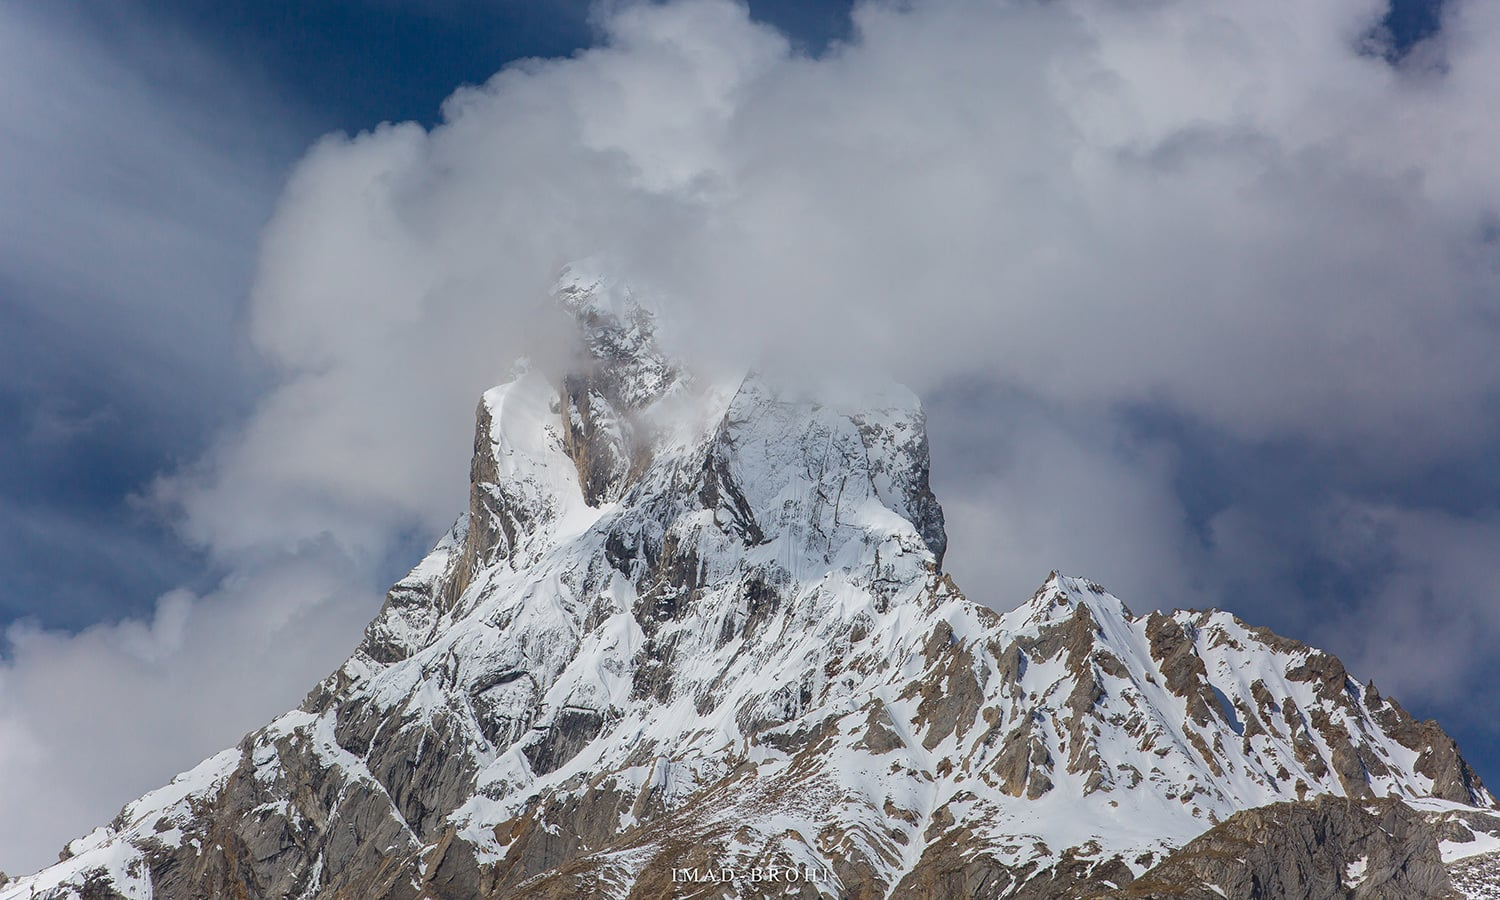 The jagged peak of Bakhordas (5,809m).